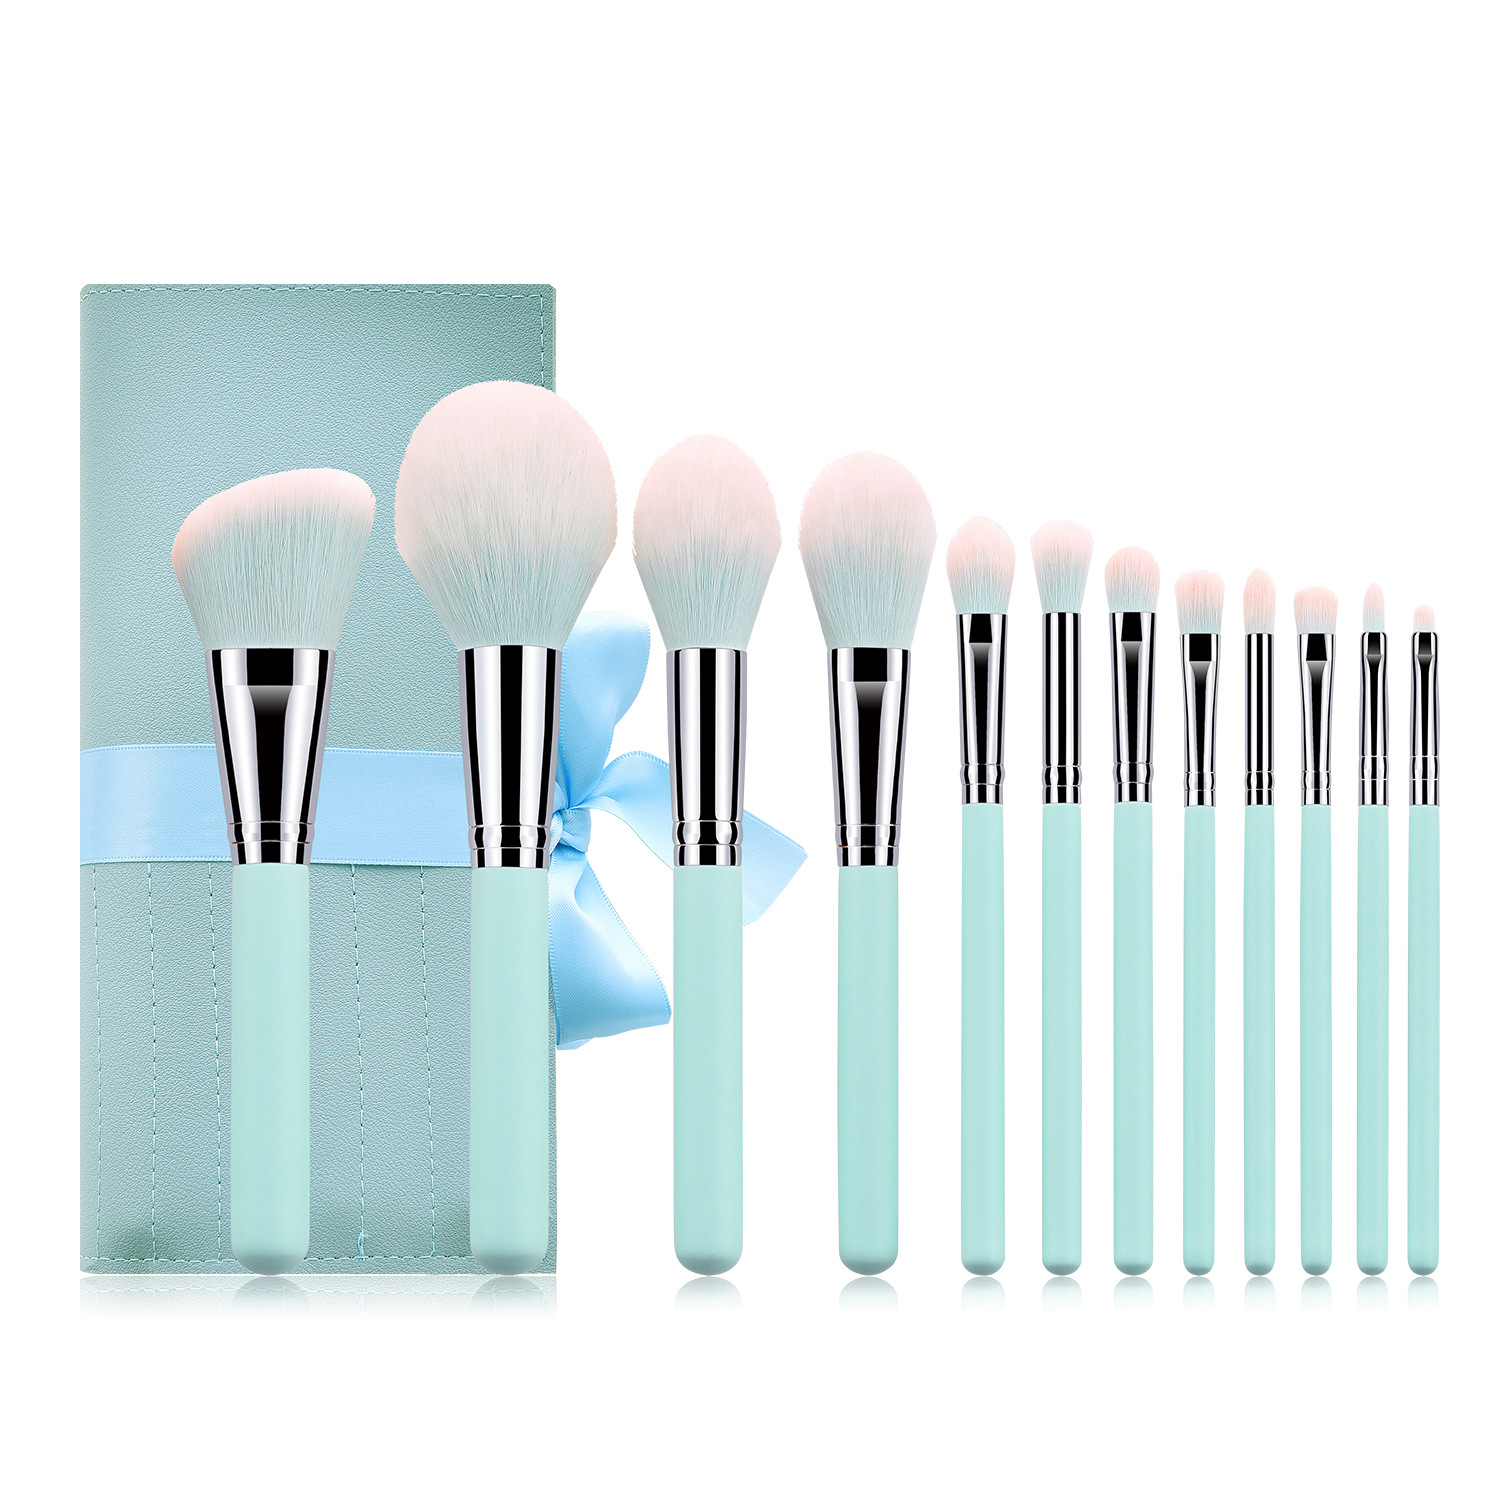 Hot Selling on Amazon 12pcs Makeup Brush Professional Tools Green Private Label Makeup Brushes Set